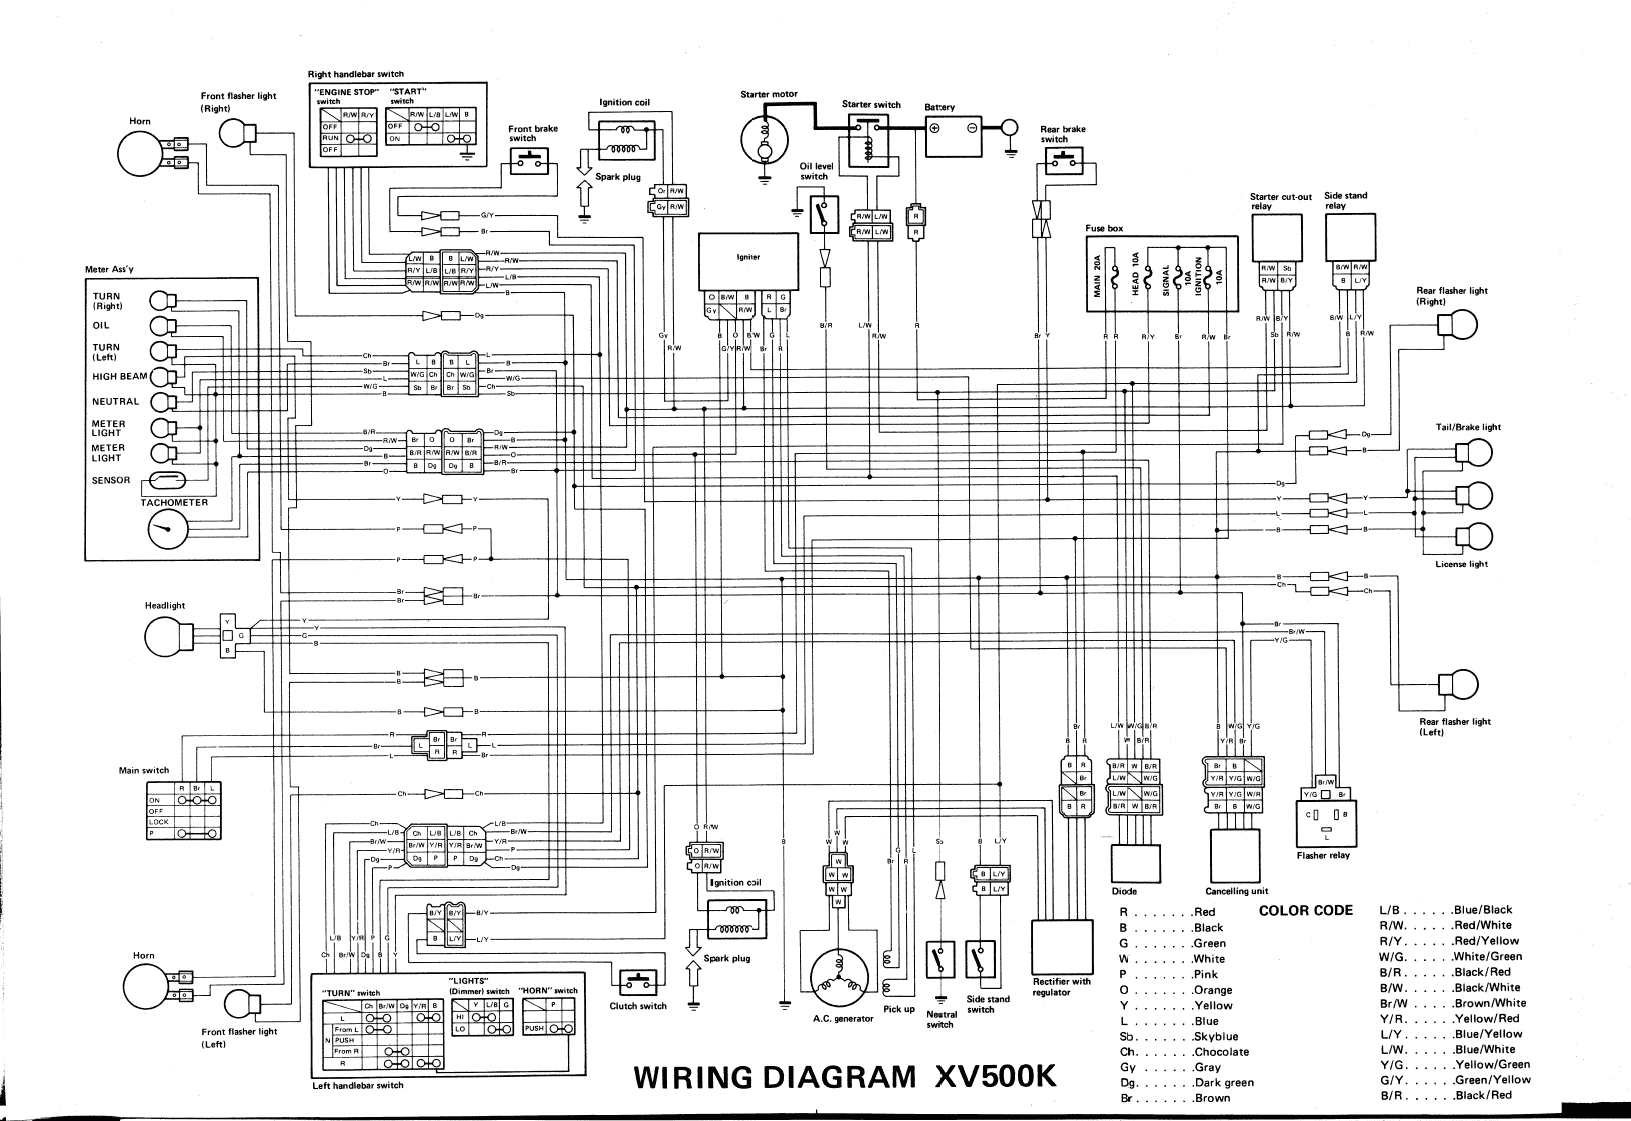 xv500k virago ignition wiring xv500k virago ignition wiring jpg yamaha virago 250 wiring diagram at bakdesigns.co